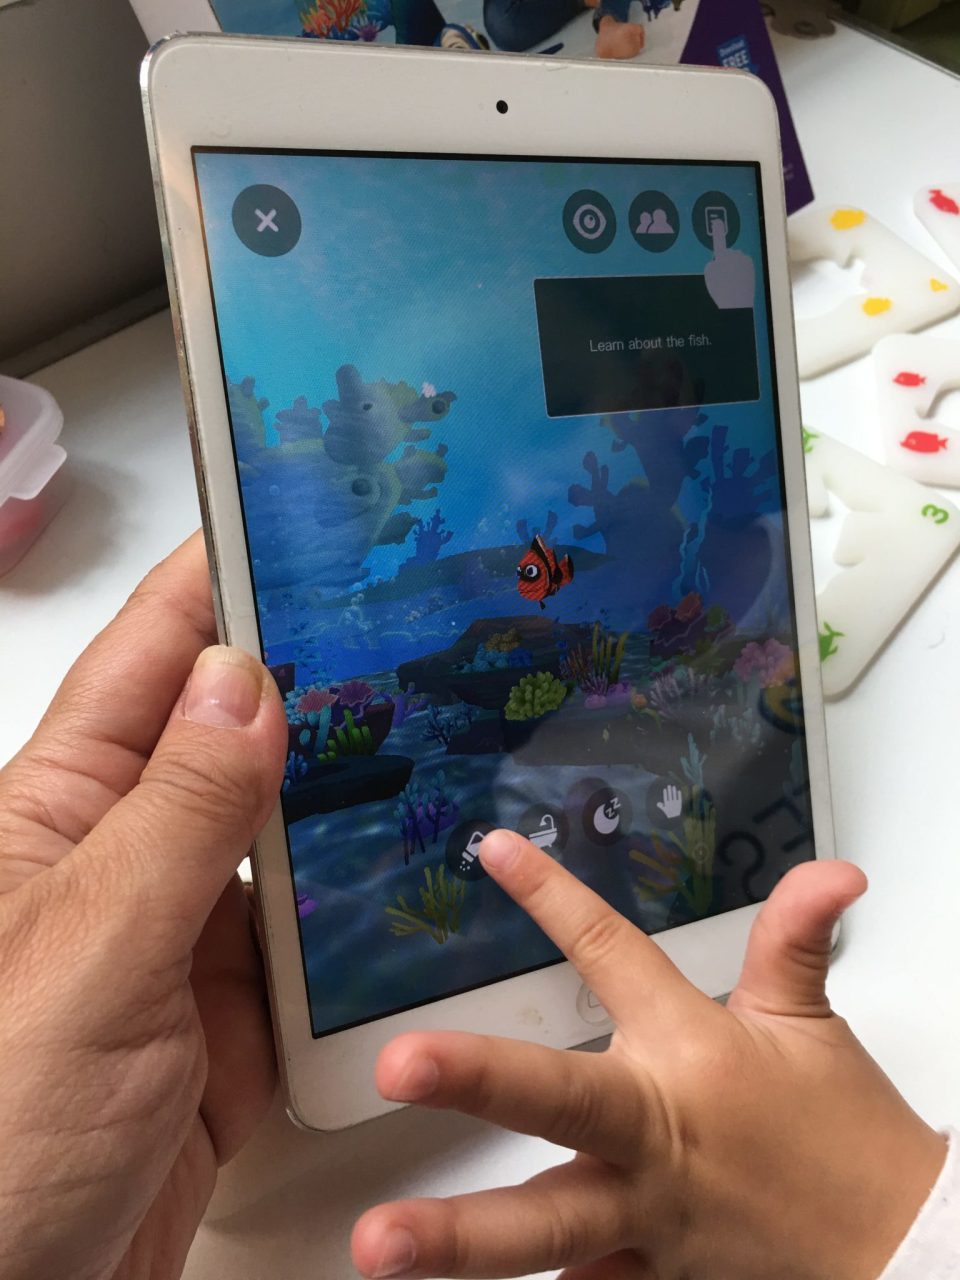 Has your kid ever asked for a pet fish? Or maybe an entire aquarium full of them? With Ocean Pets kids can create a virtual aquarium and have fun learning!